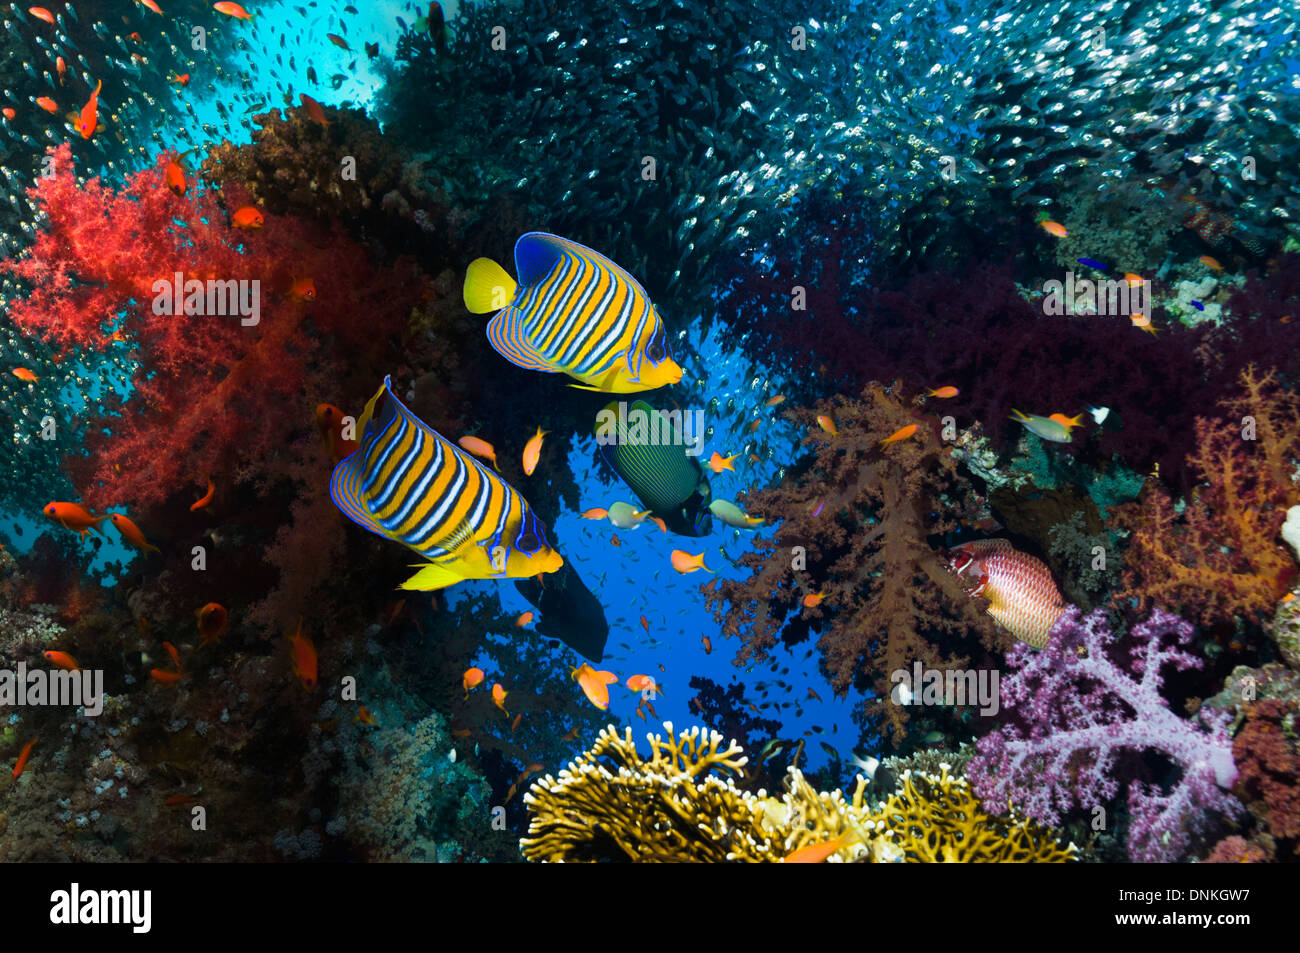 Coral reef scenery with angelfish - Stock Image